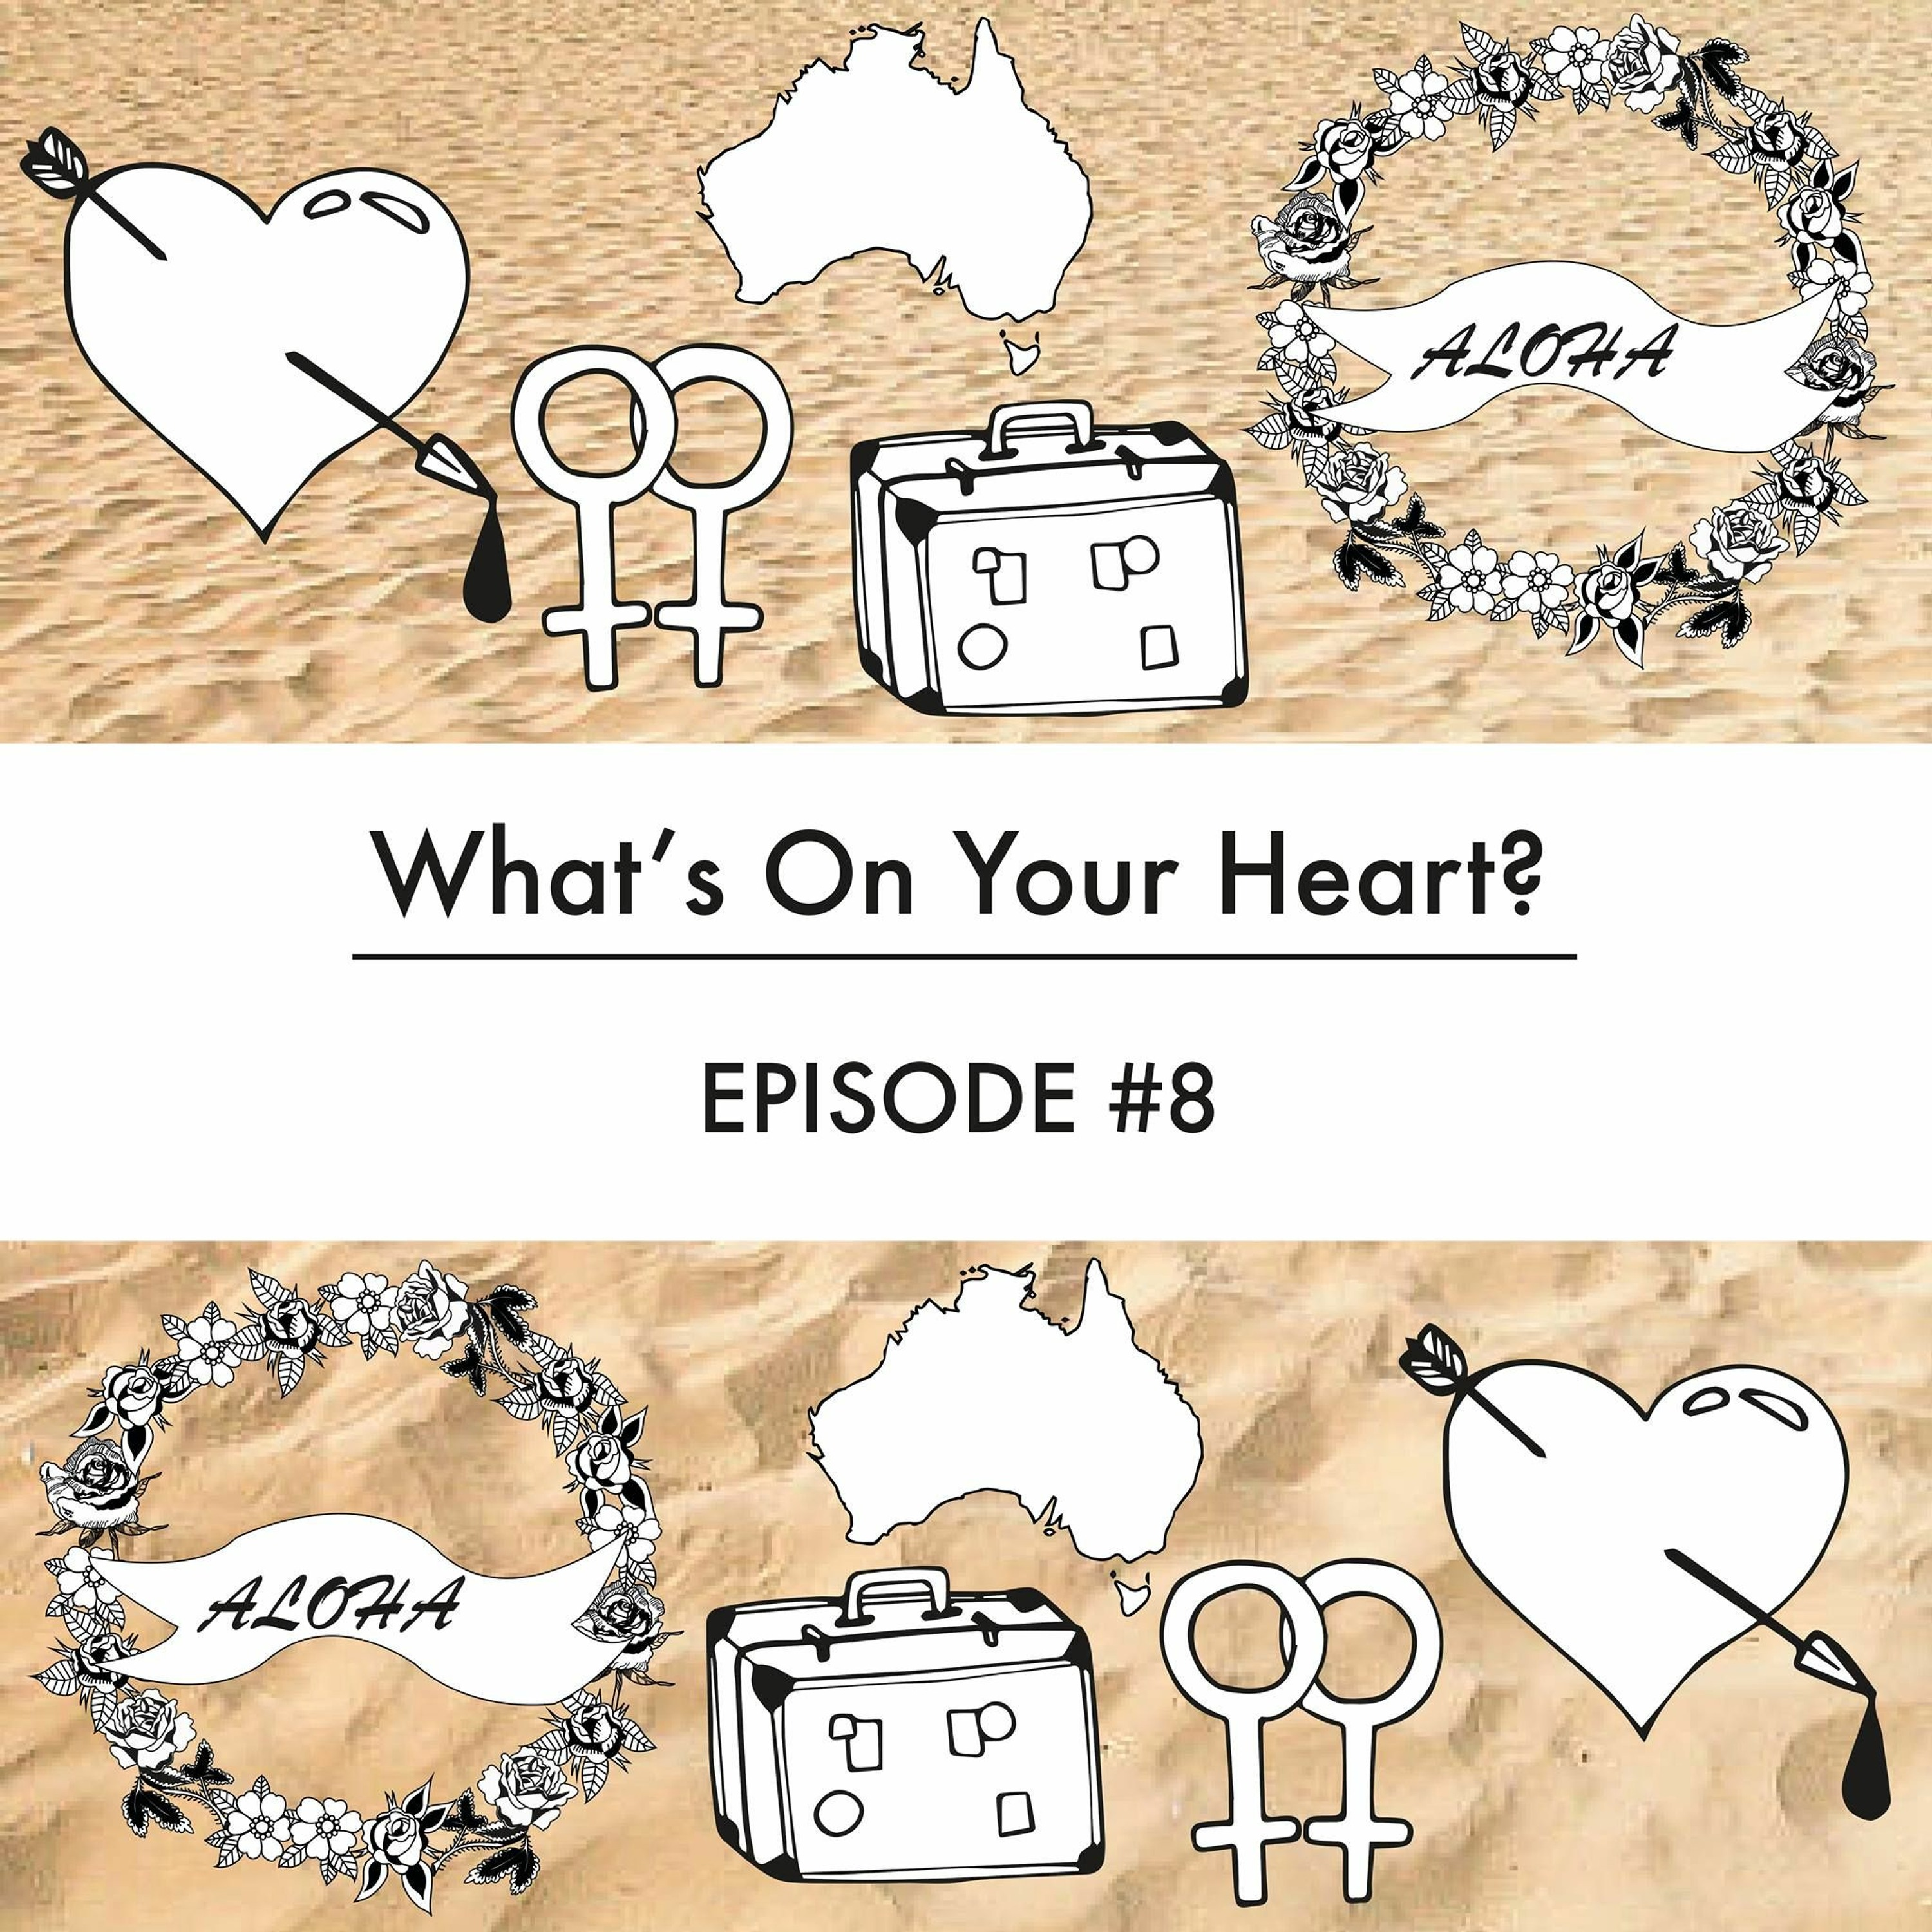 Episode 8 - What's On Your Heart?